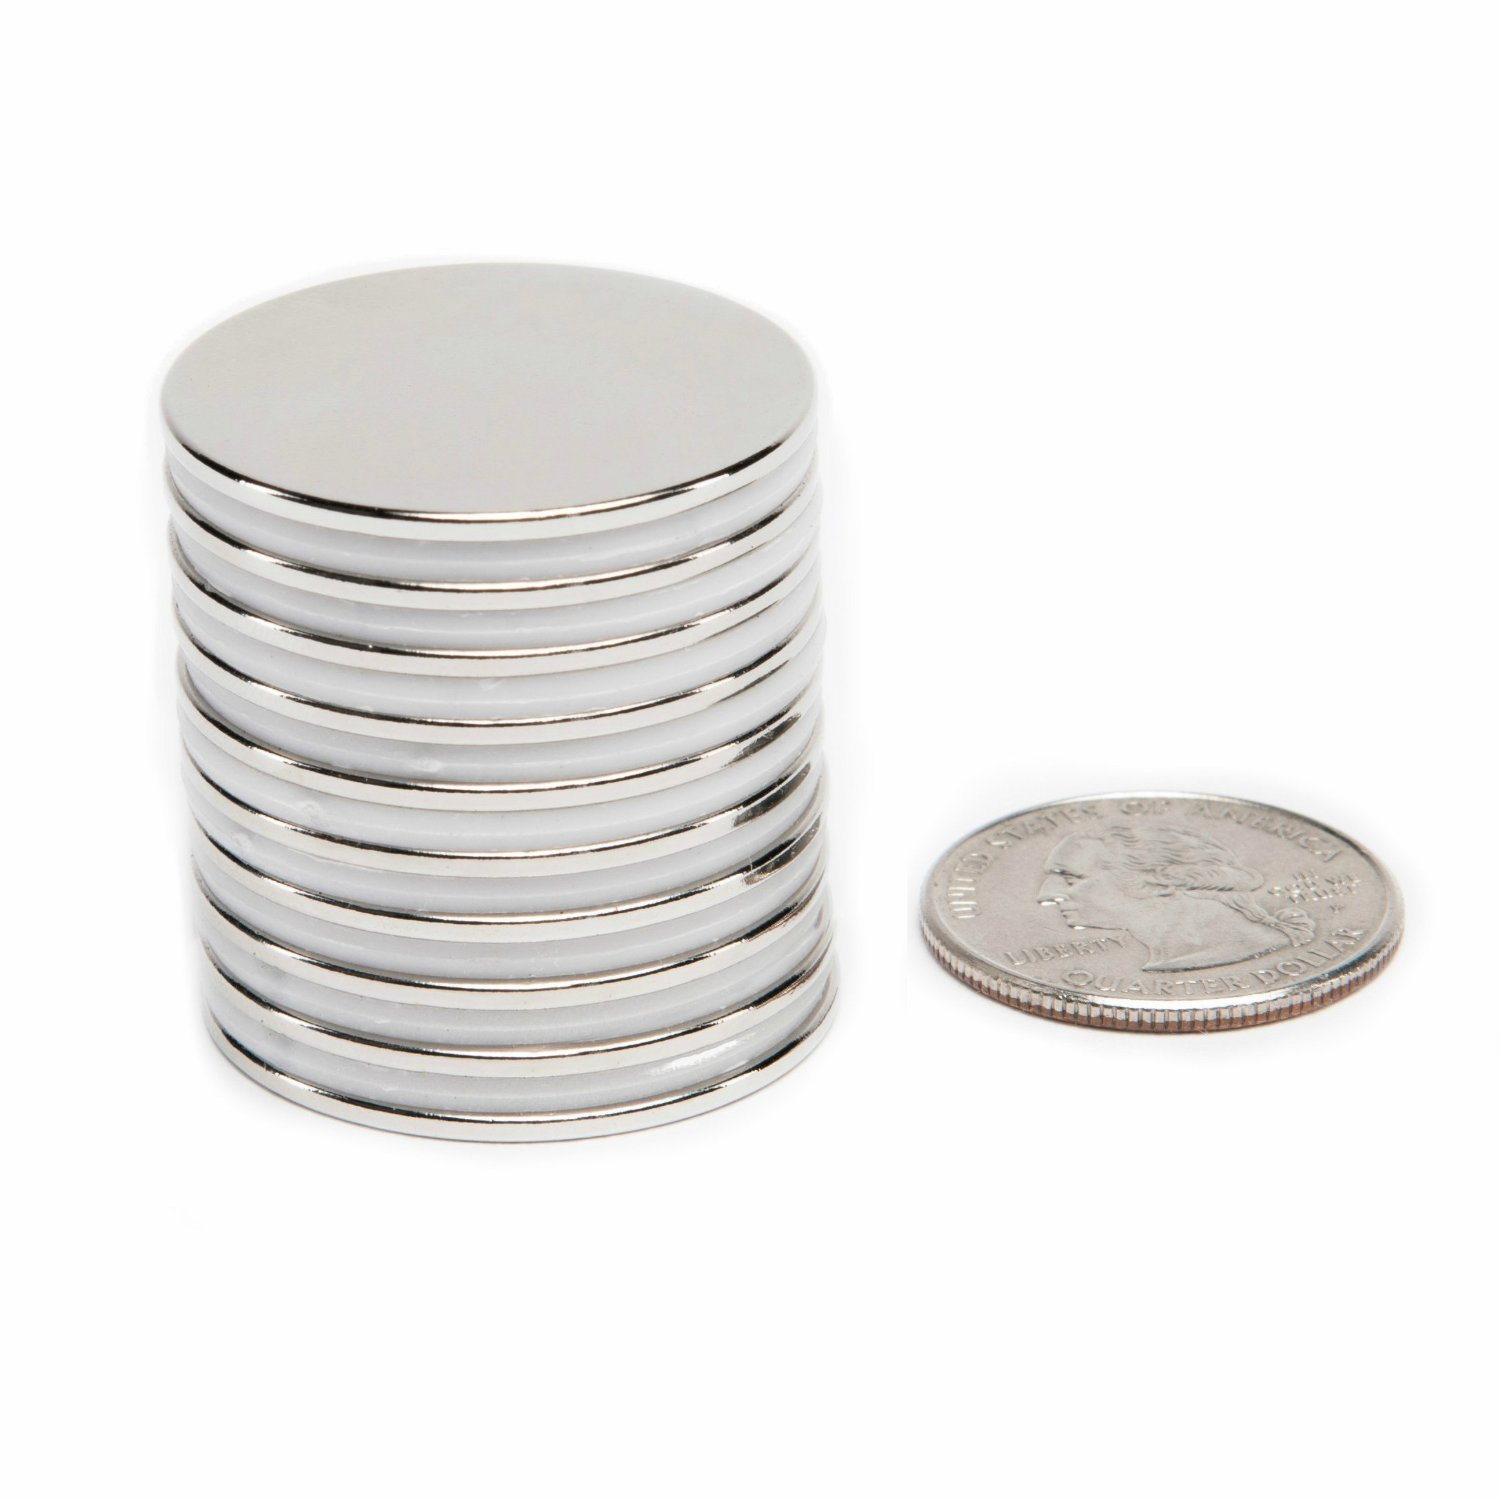 10 pcs N52 Super Strong Disc Magnets 20mm x 3mm Rare-Earth Neodymium Magnets chenyd118